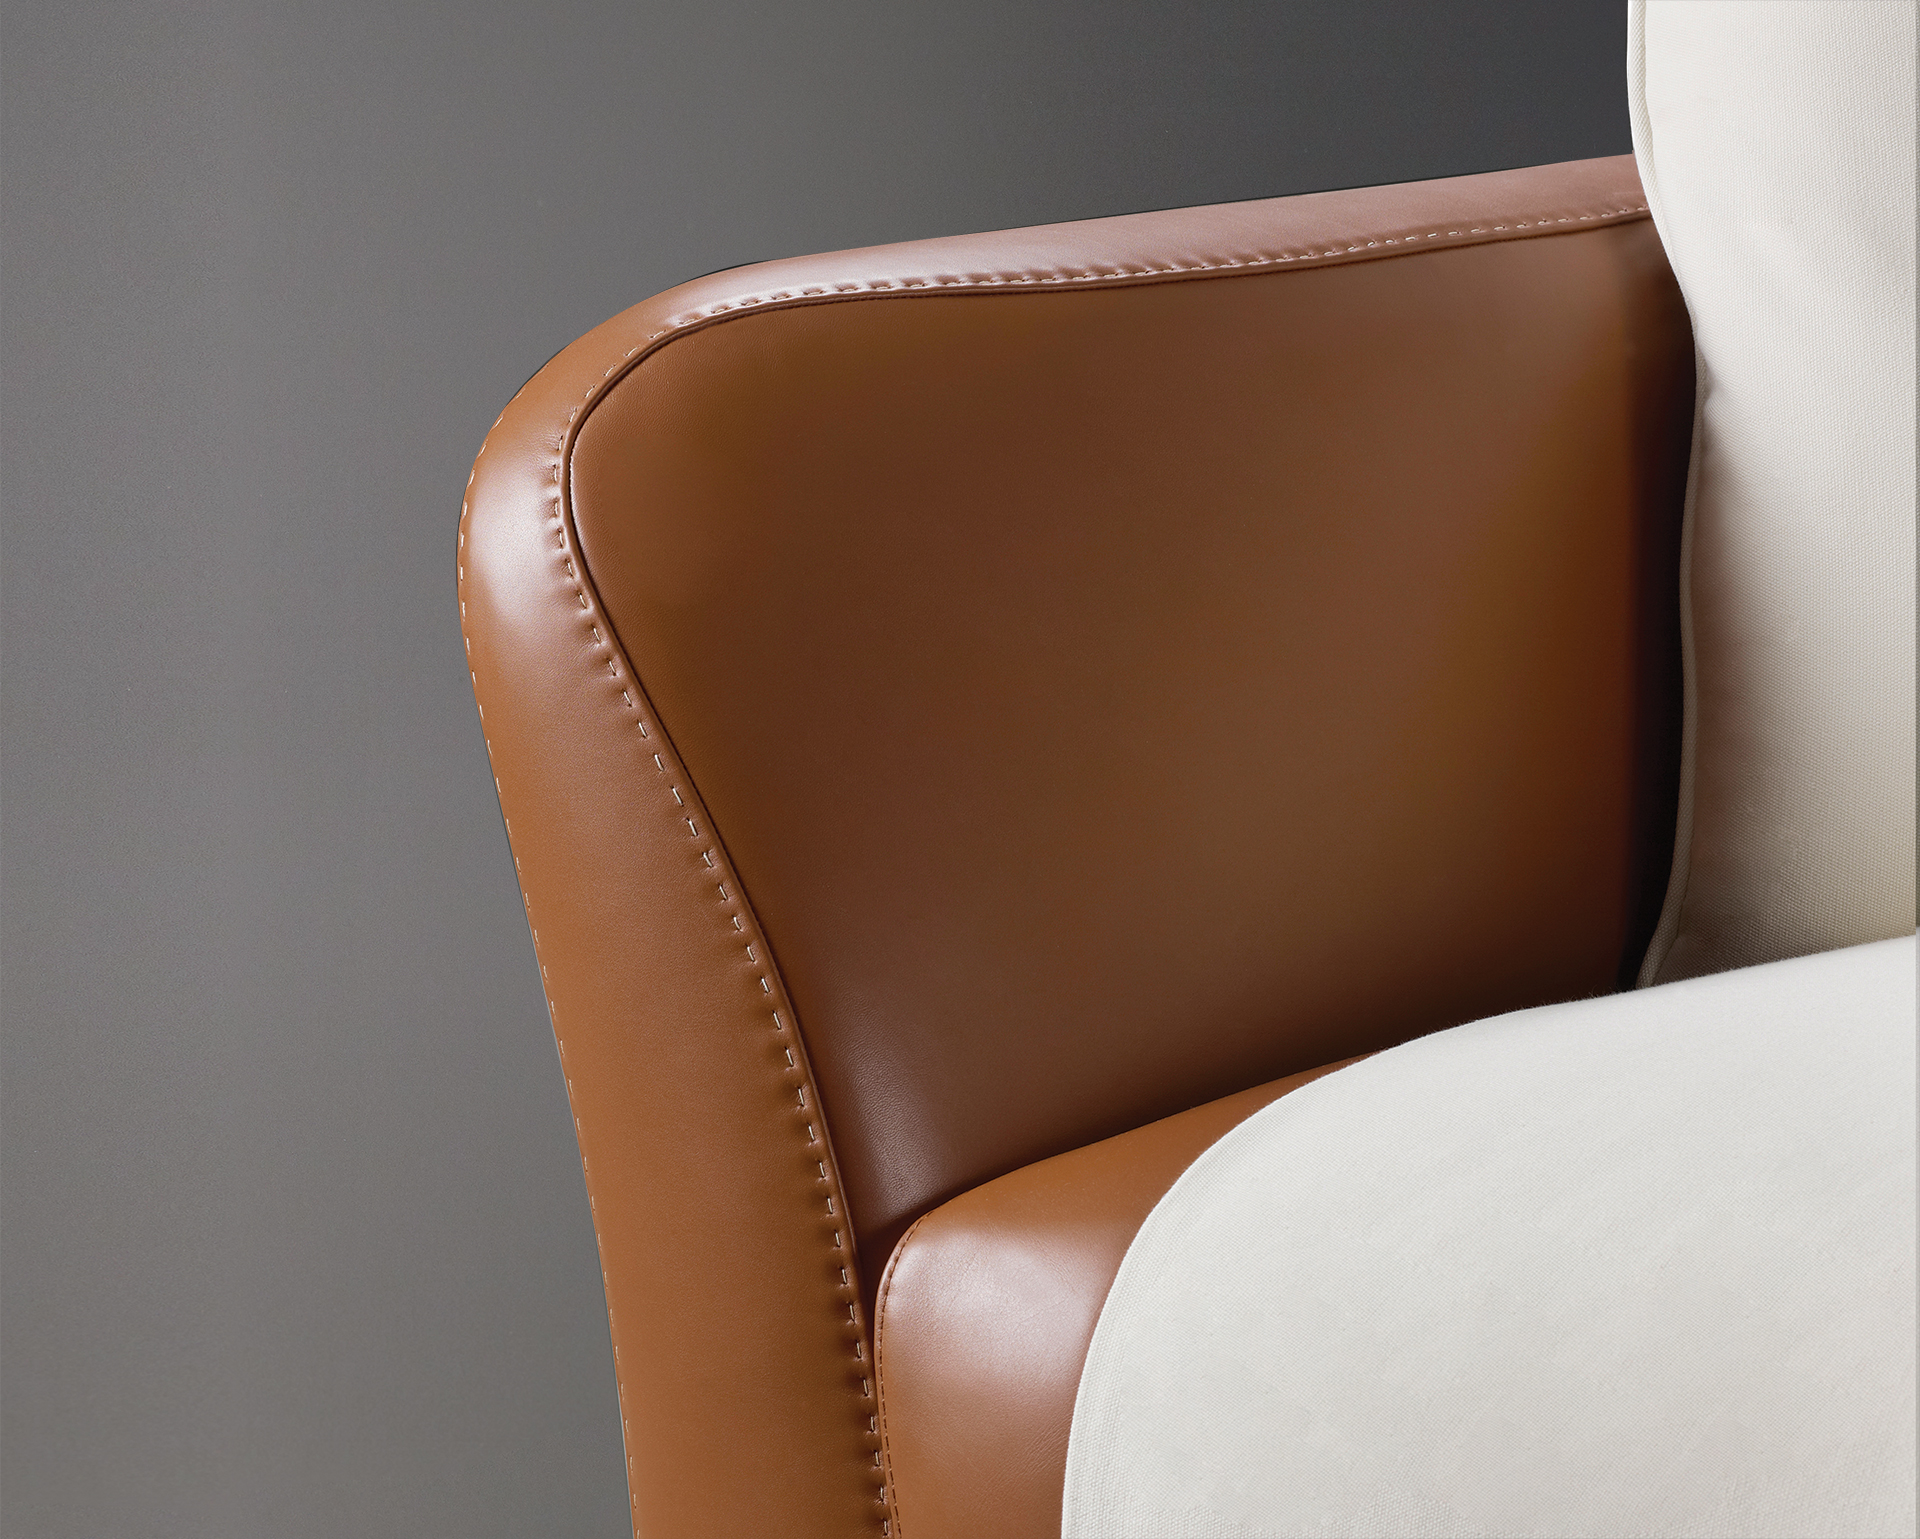 Leather detail of Shangri-la, a wooden sofa covered in leather and fabric, from Promemoria's catalogue | Promemoria